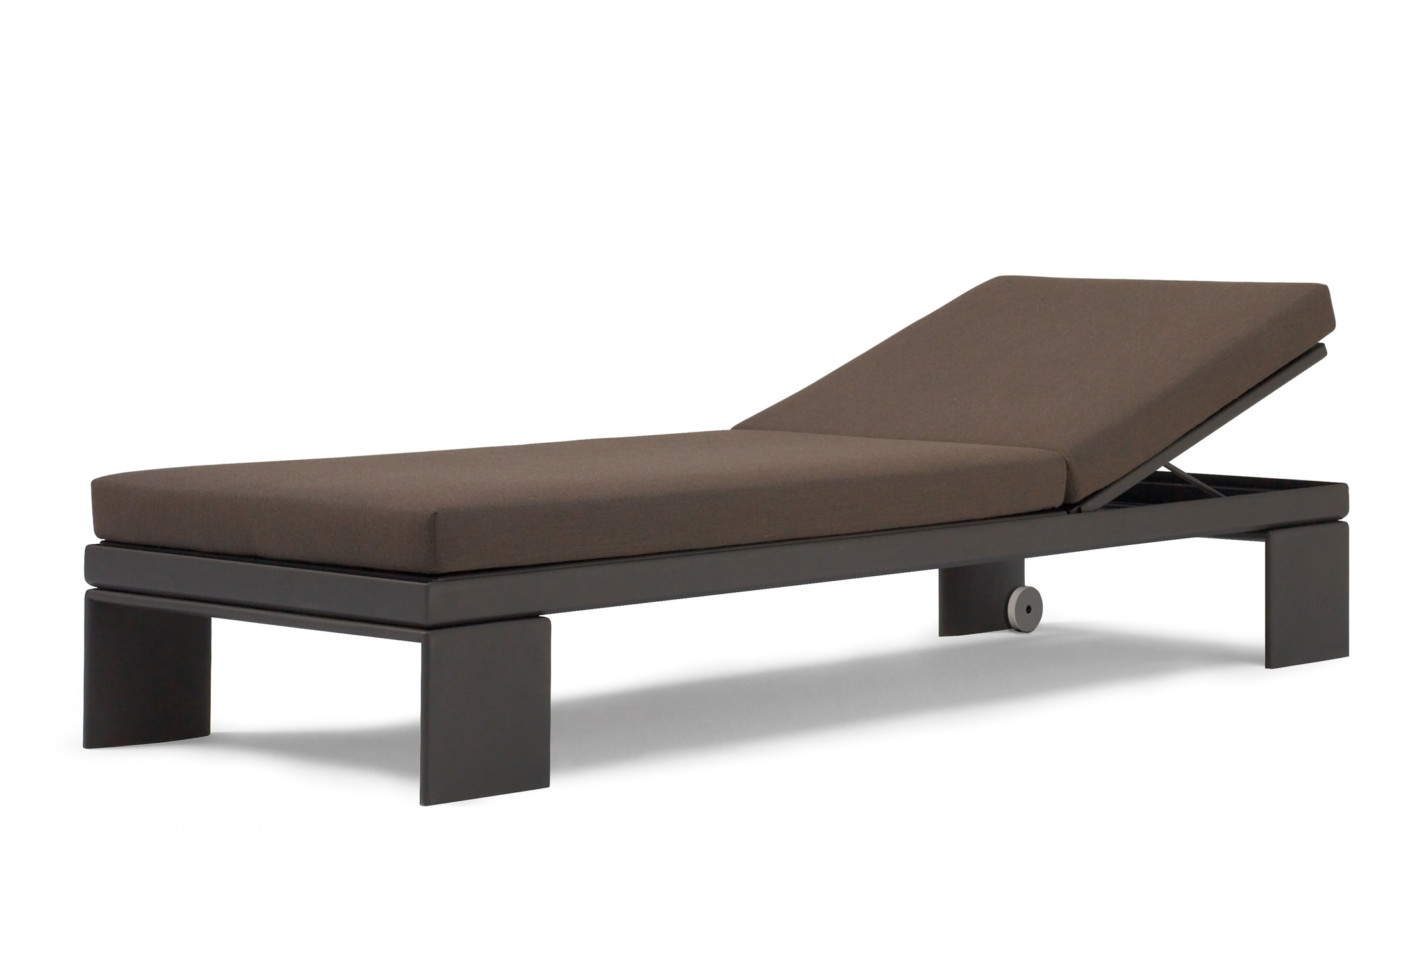 Landscape alu chaise longue by andreu world stylepark for Chaise longue chilienne